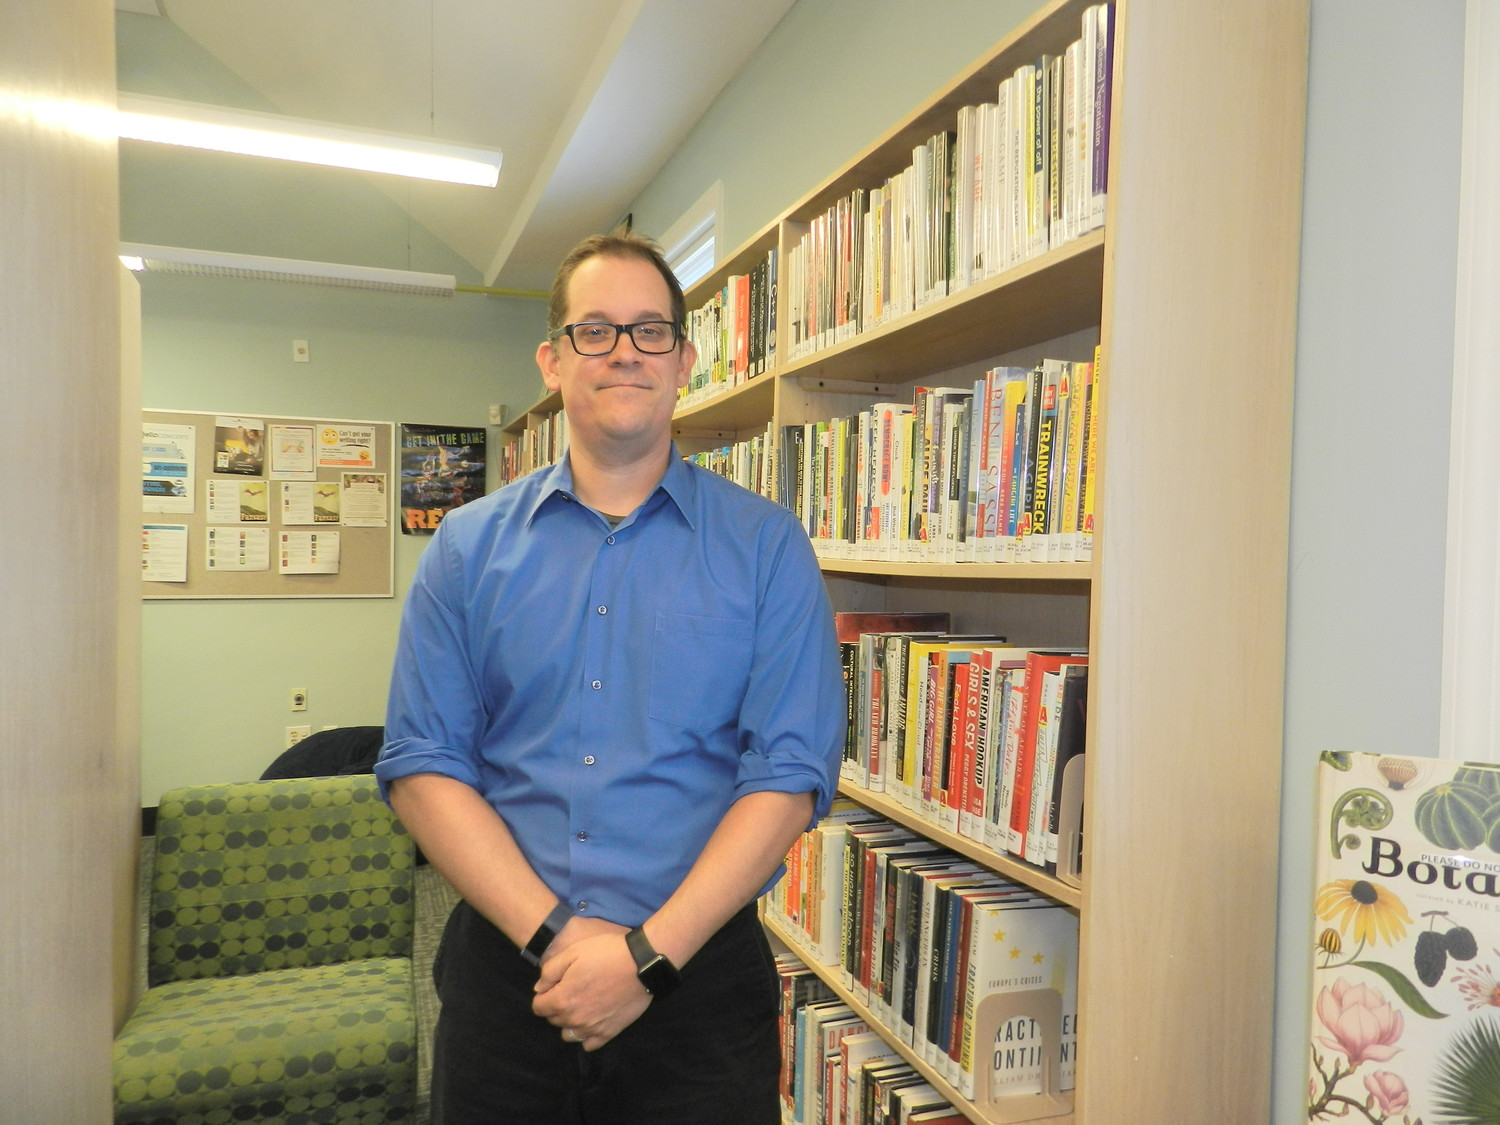 Michael Morea's fascination with libraries grew out of the Story Time programs he attended at his home library in Bethpage.